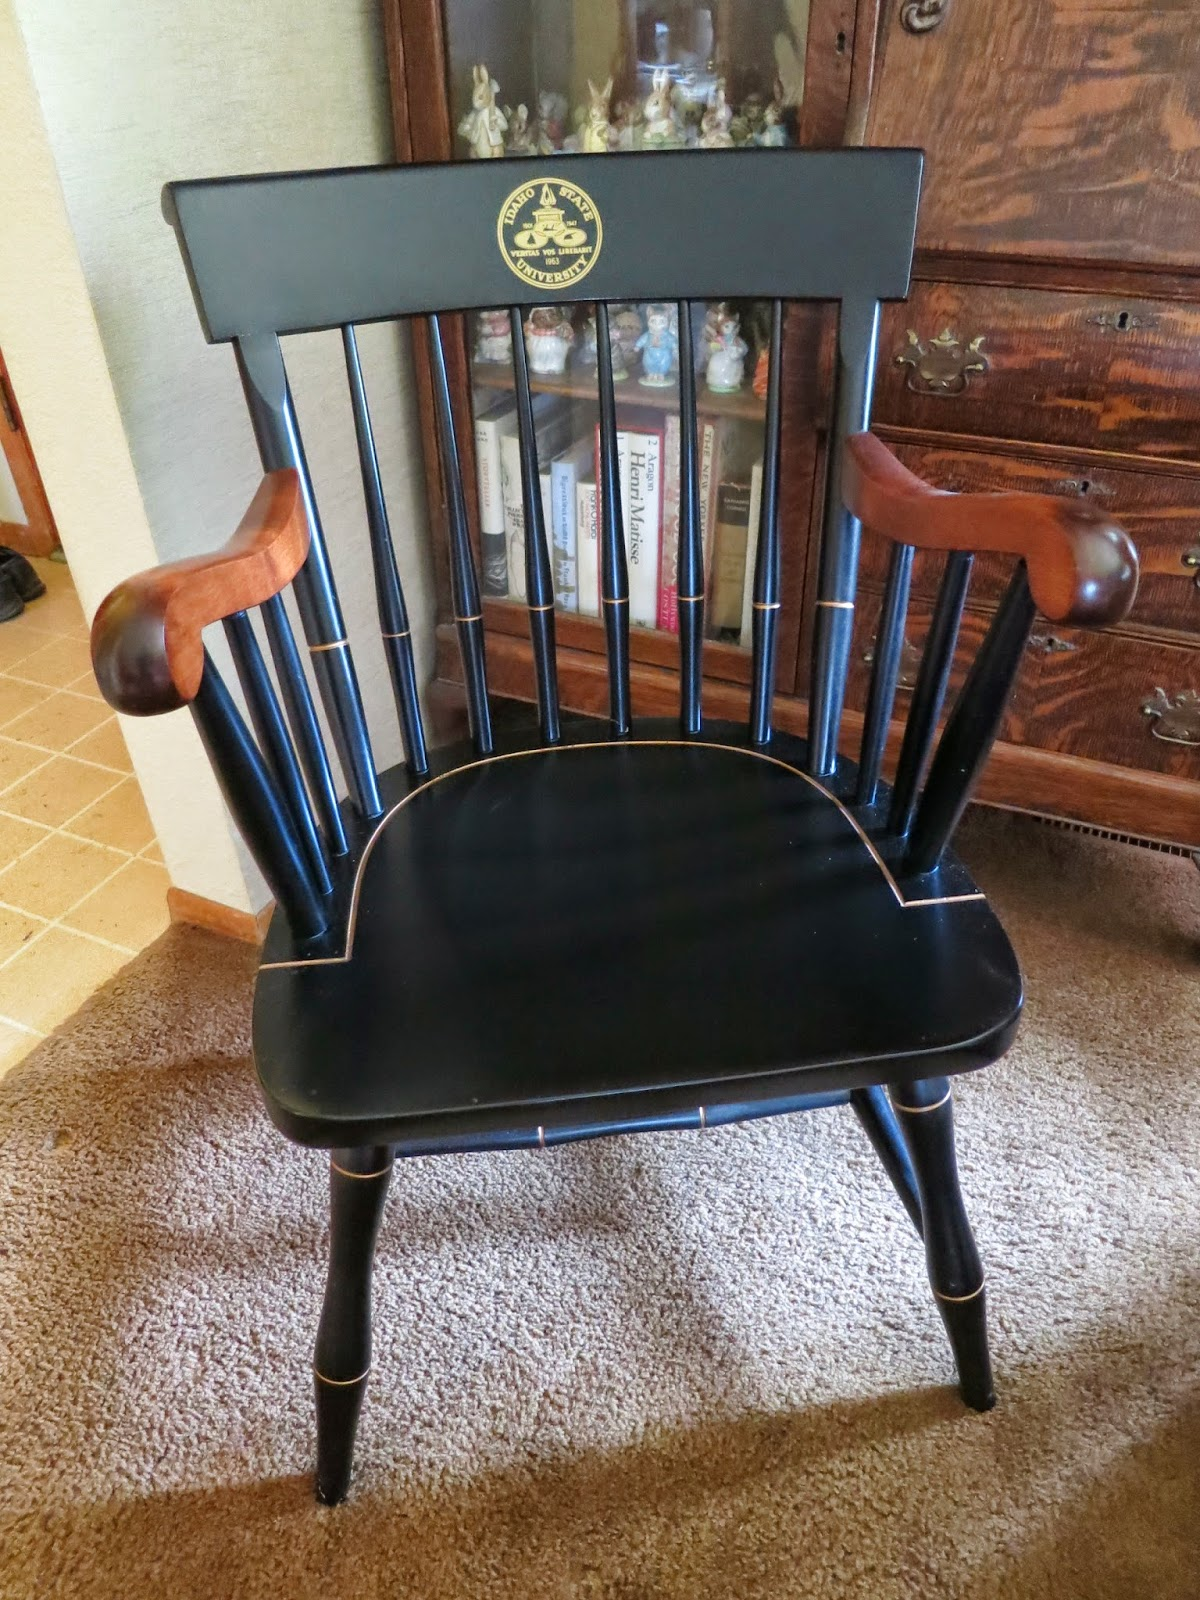 The Plaque Seems A Bit Less Practical Than The Gift My Spouse Received From  Idaho State After His 33 Years Of Service There. He Got This Beautiful Chair .